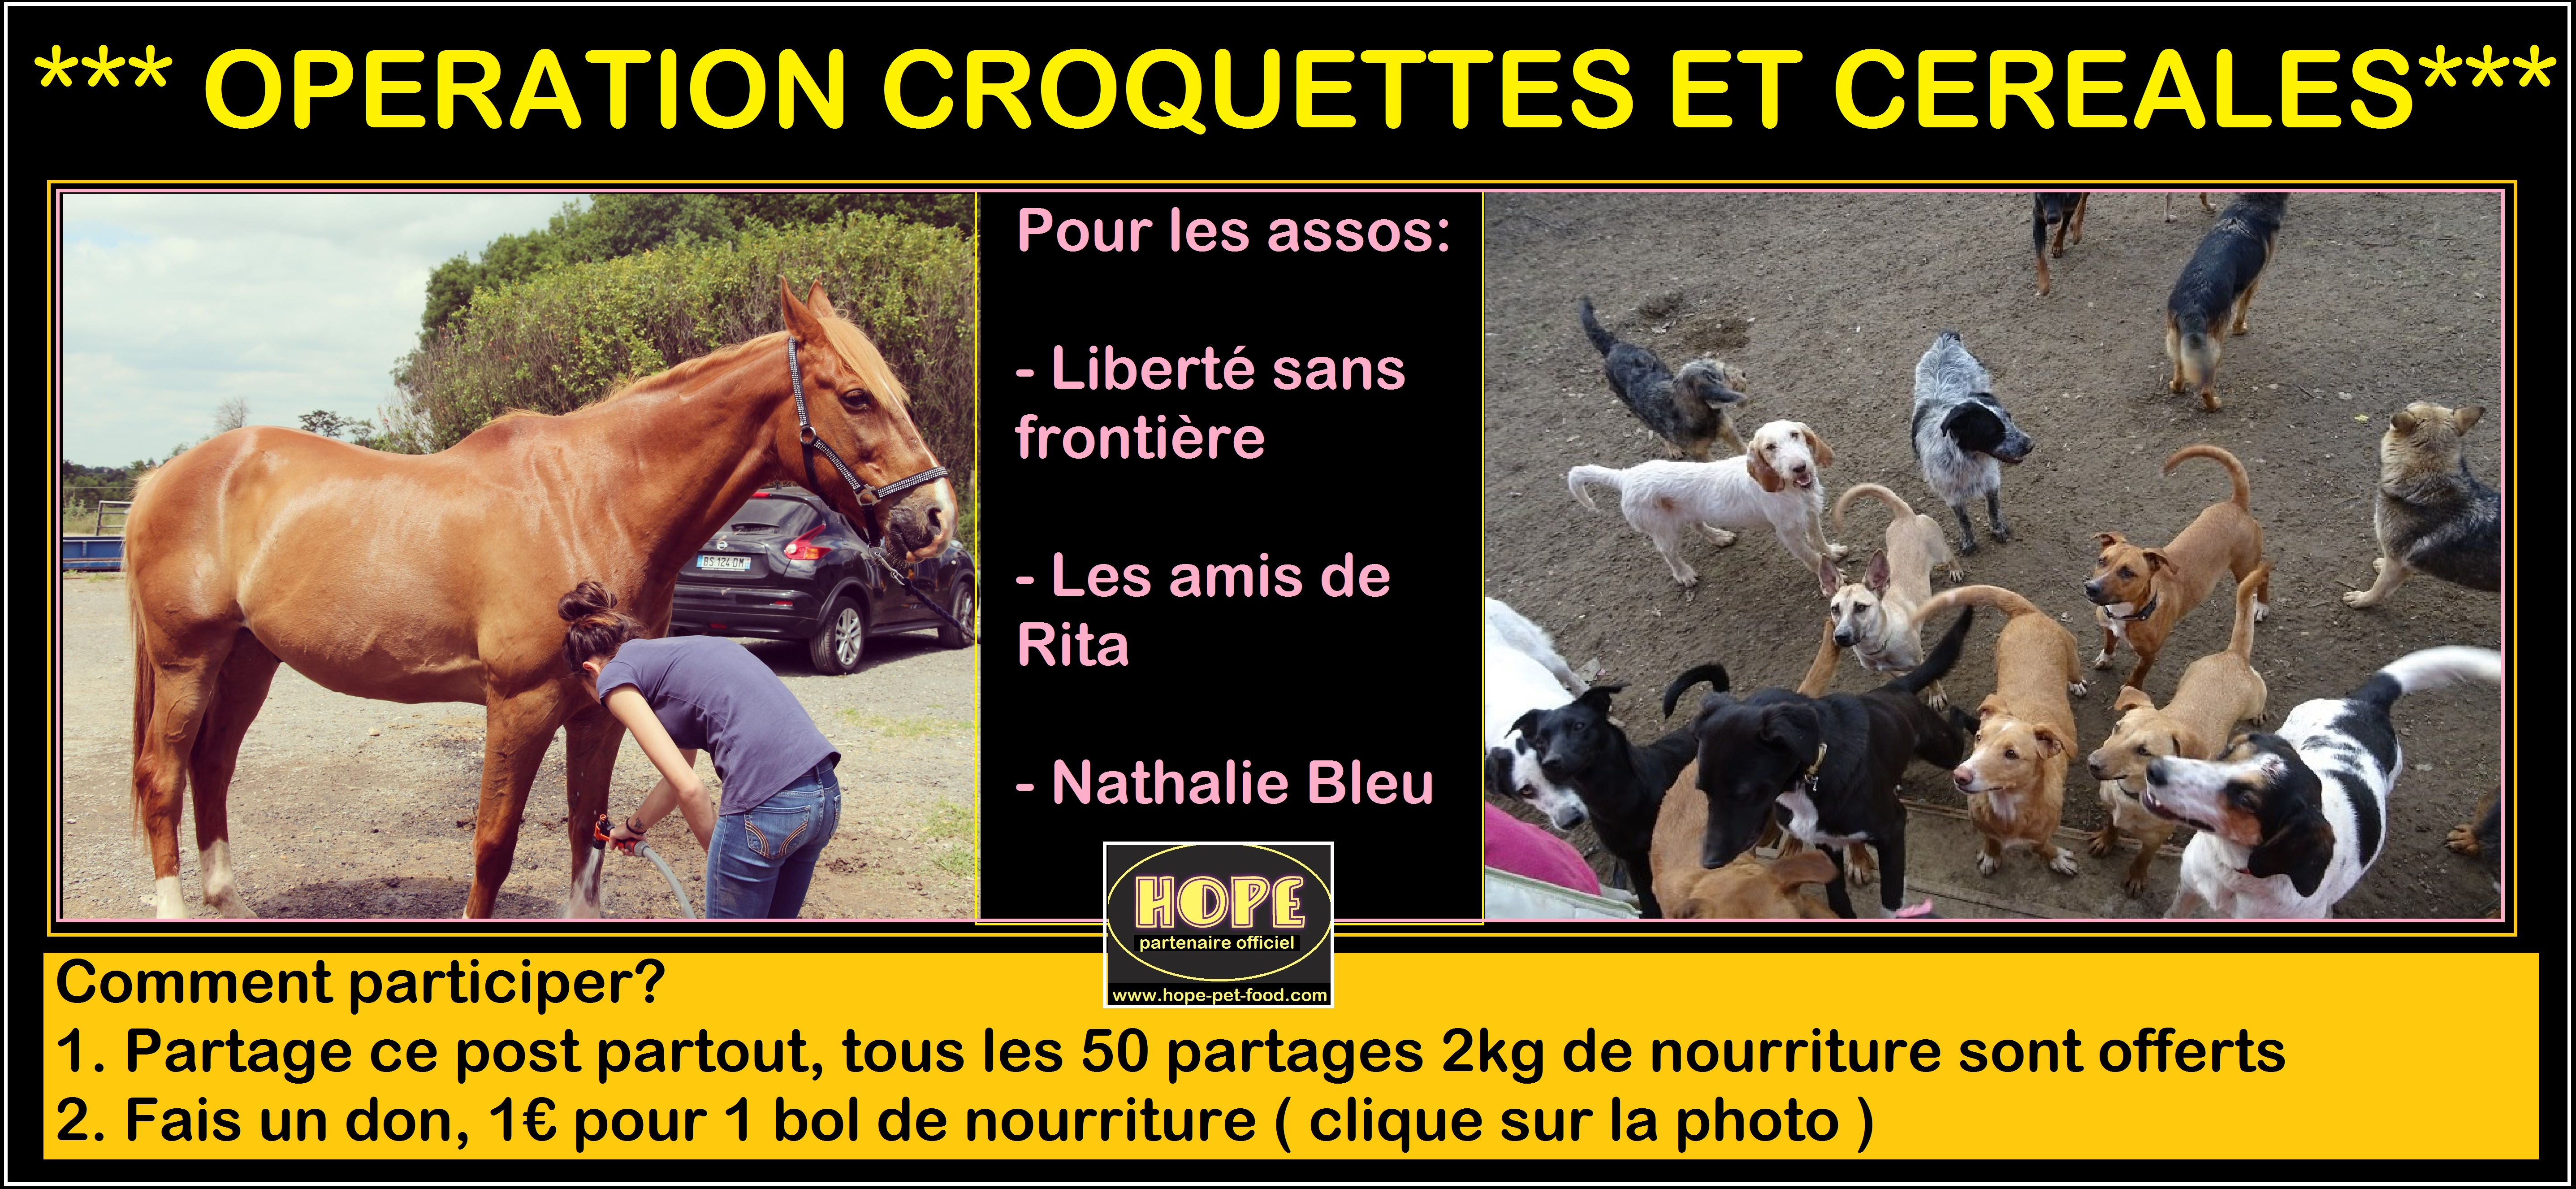 solidarite Hope protection animale